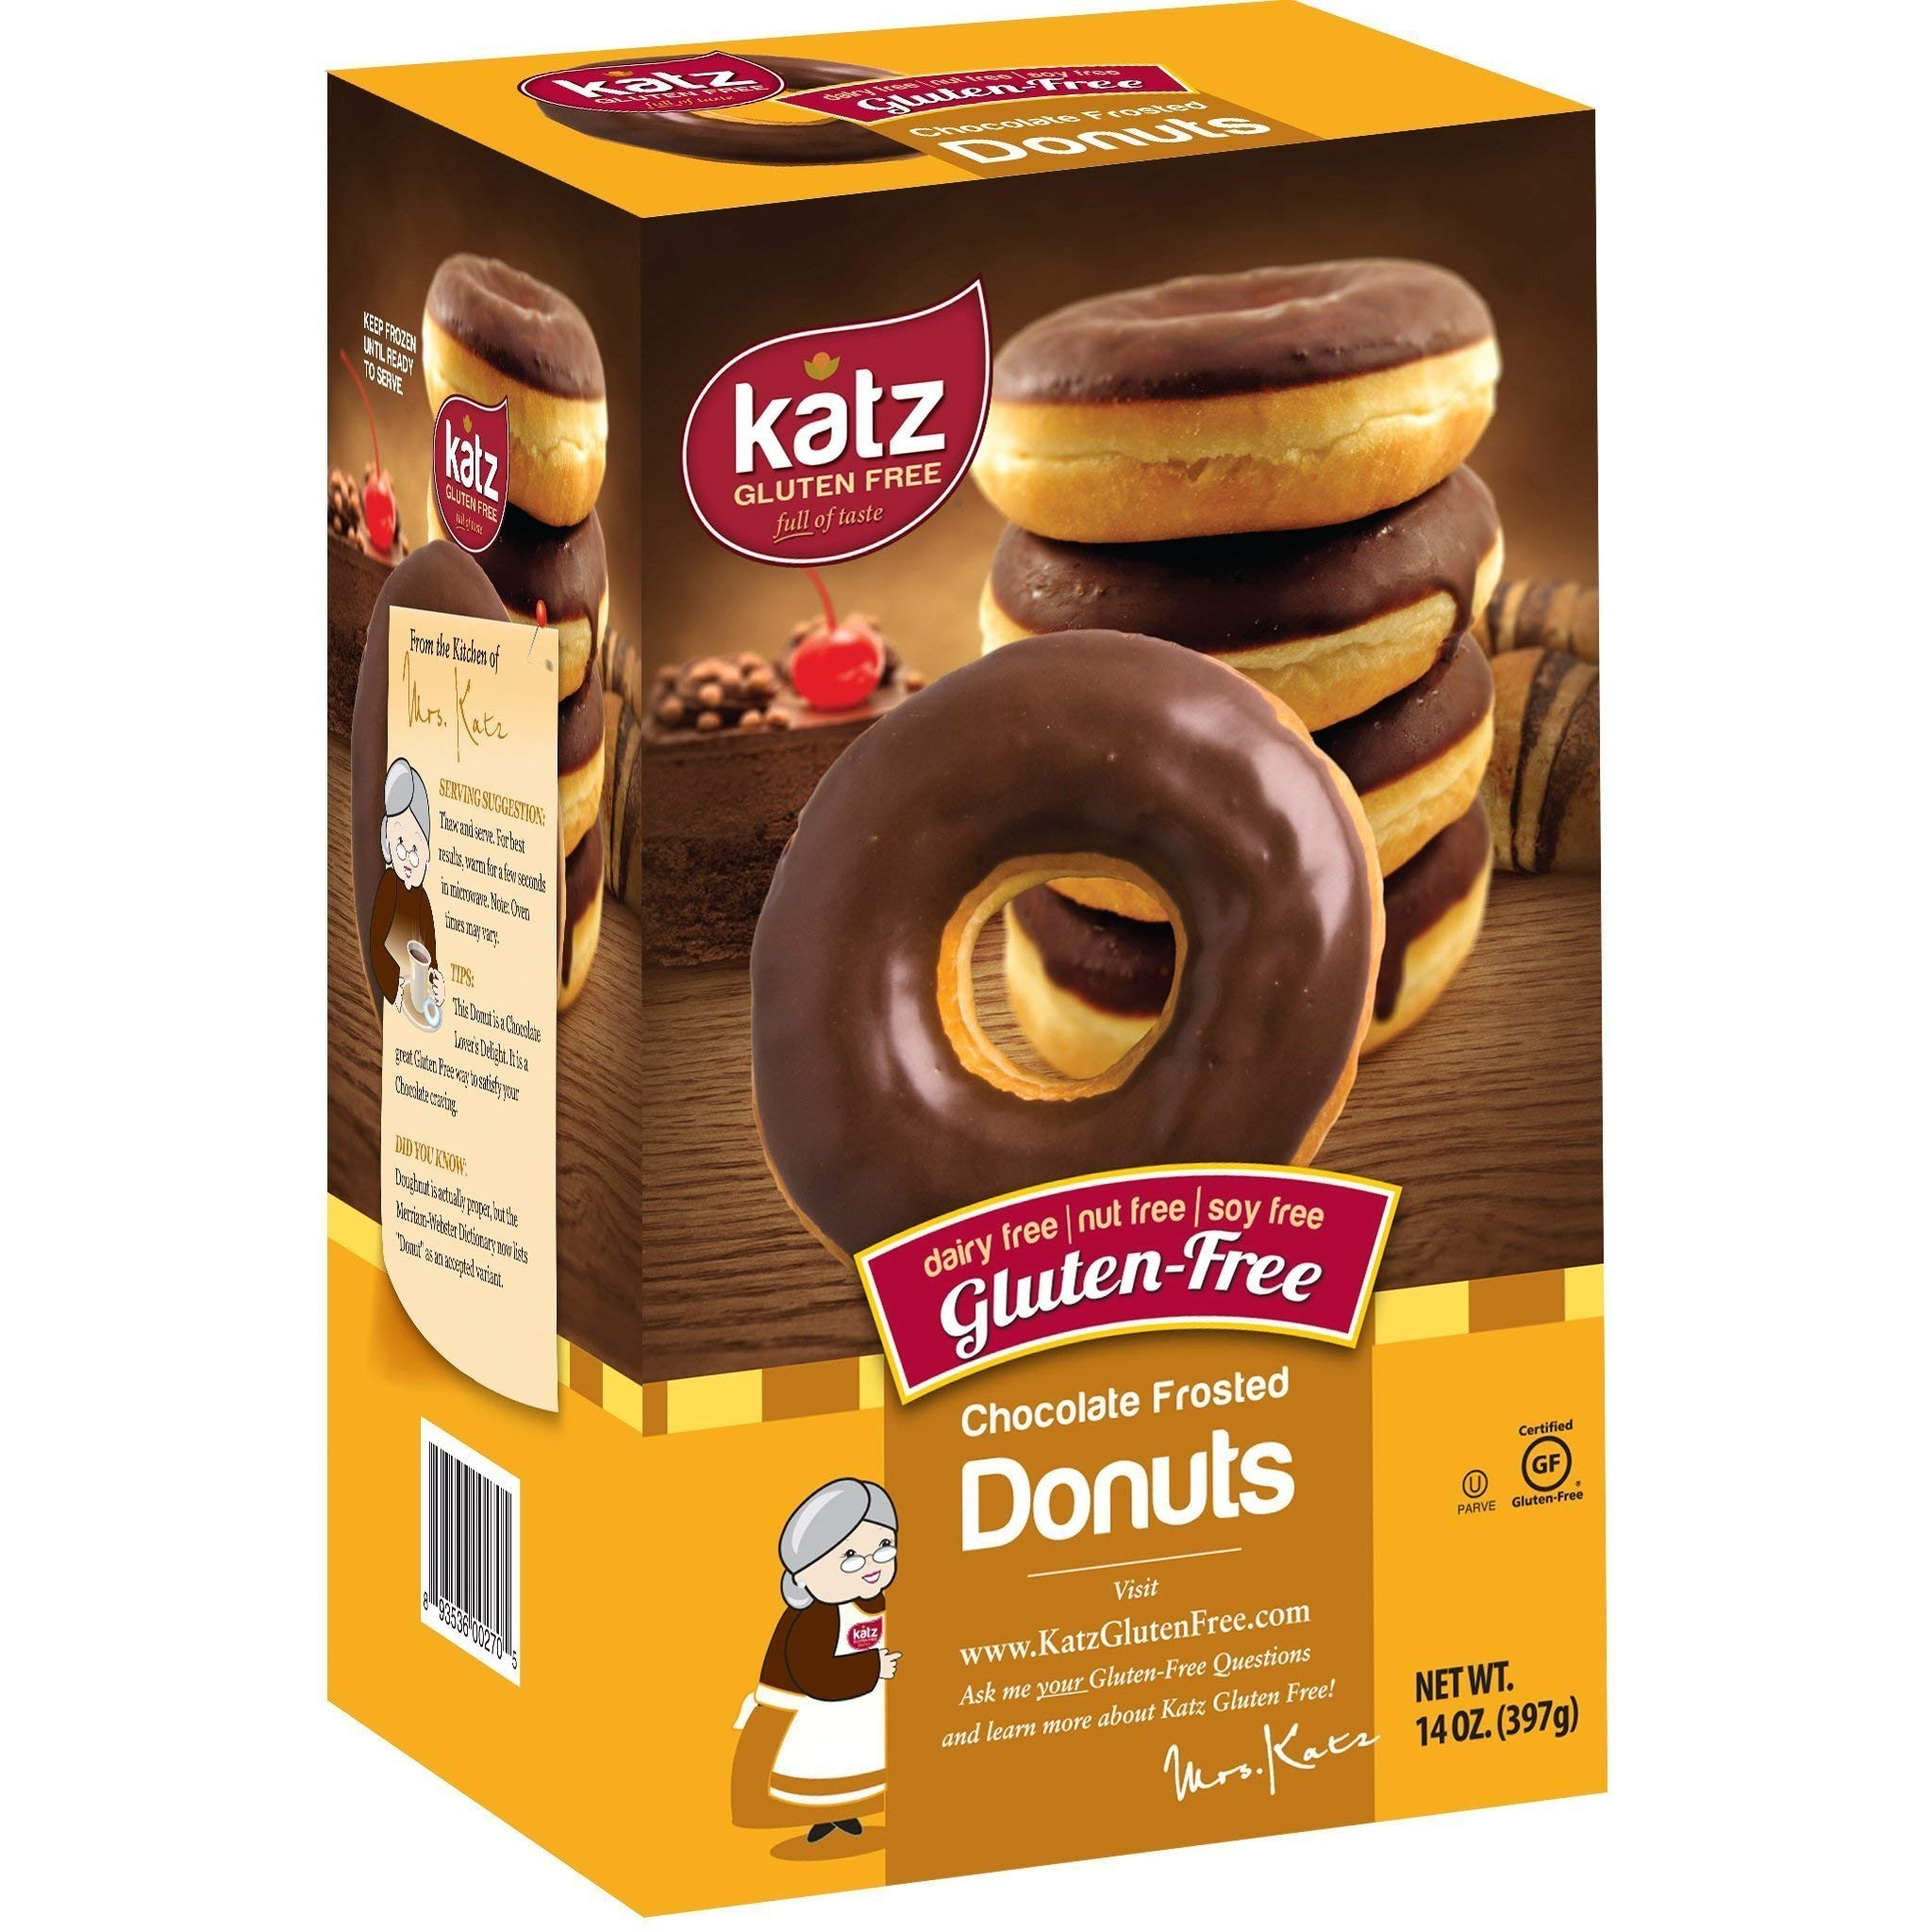 Katz Gluten Free Chocolate Frosted Donuts | Dairy, Nut, Soy and Gluten Free | Kosher (6 Packs of 6 Donuts, 14 Ounce Each) by Katz Gluten Free